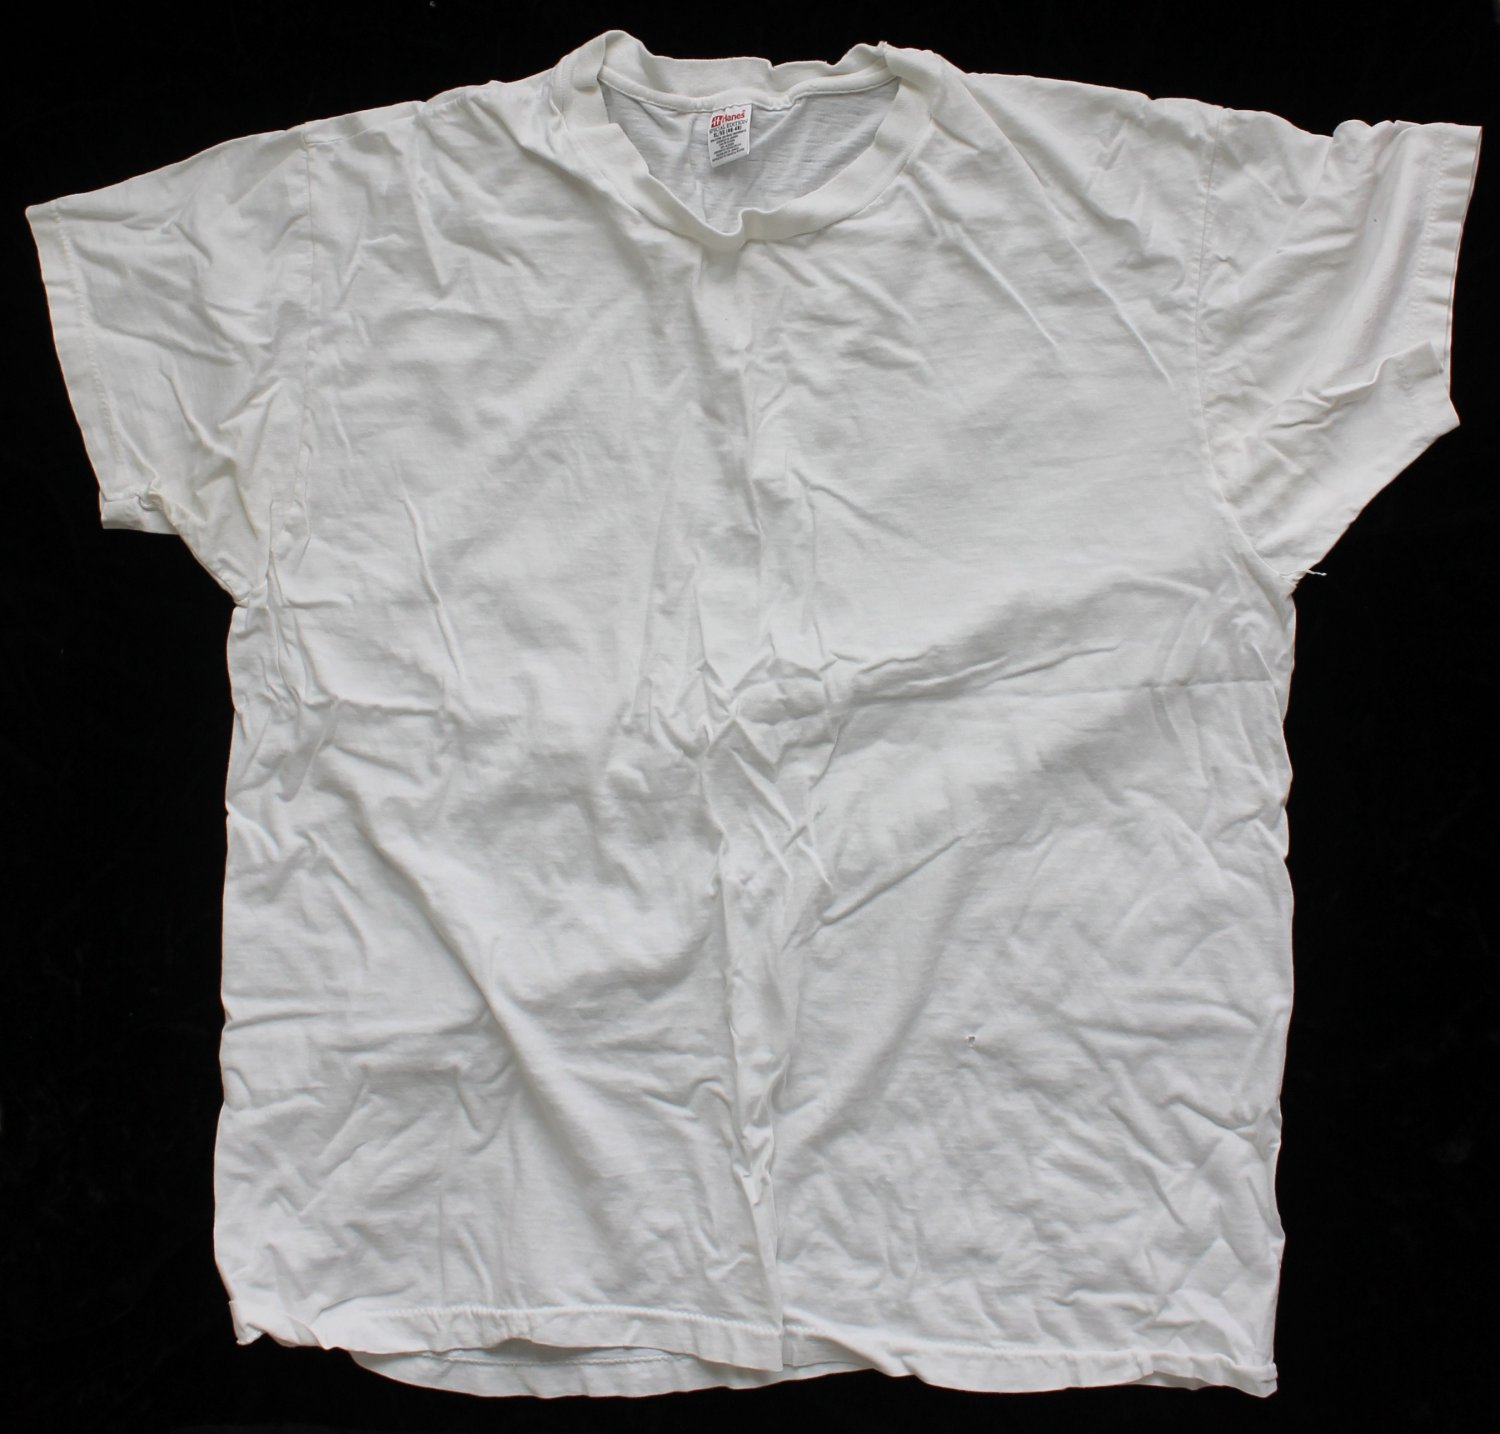 Hanes Men's Used Special Edition XL T-Shirt Undershirt 46-48